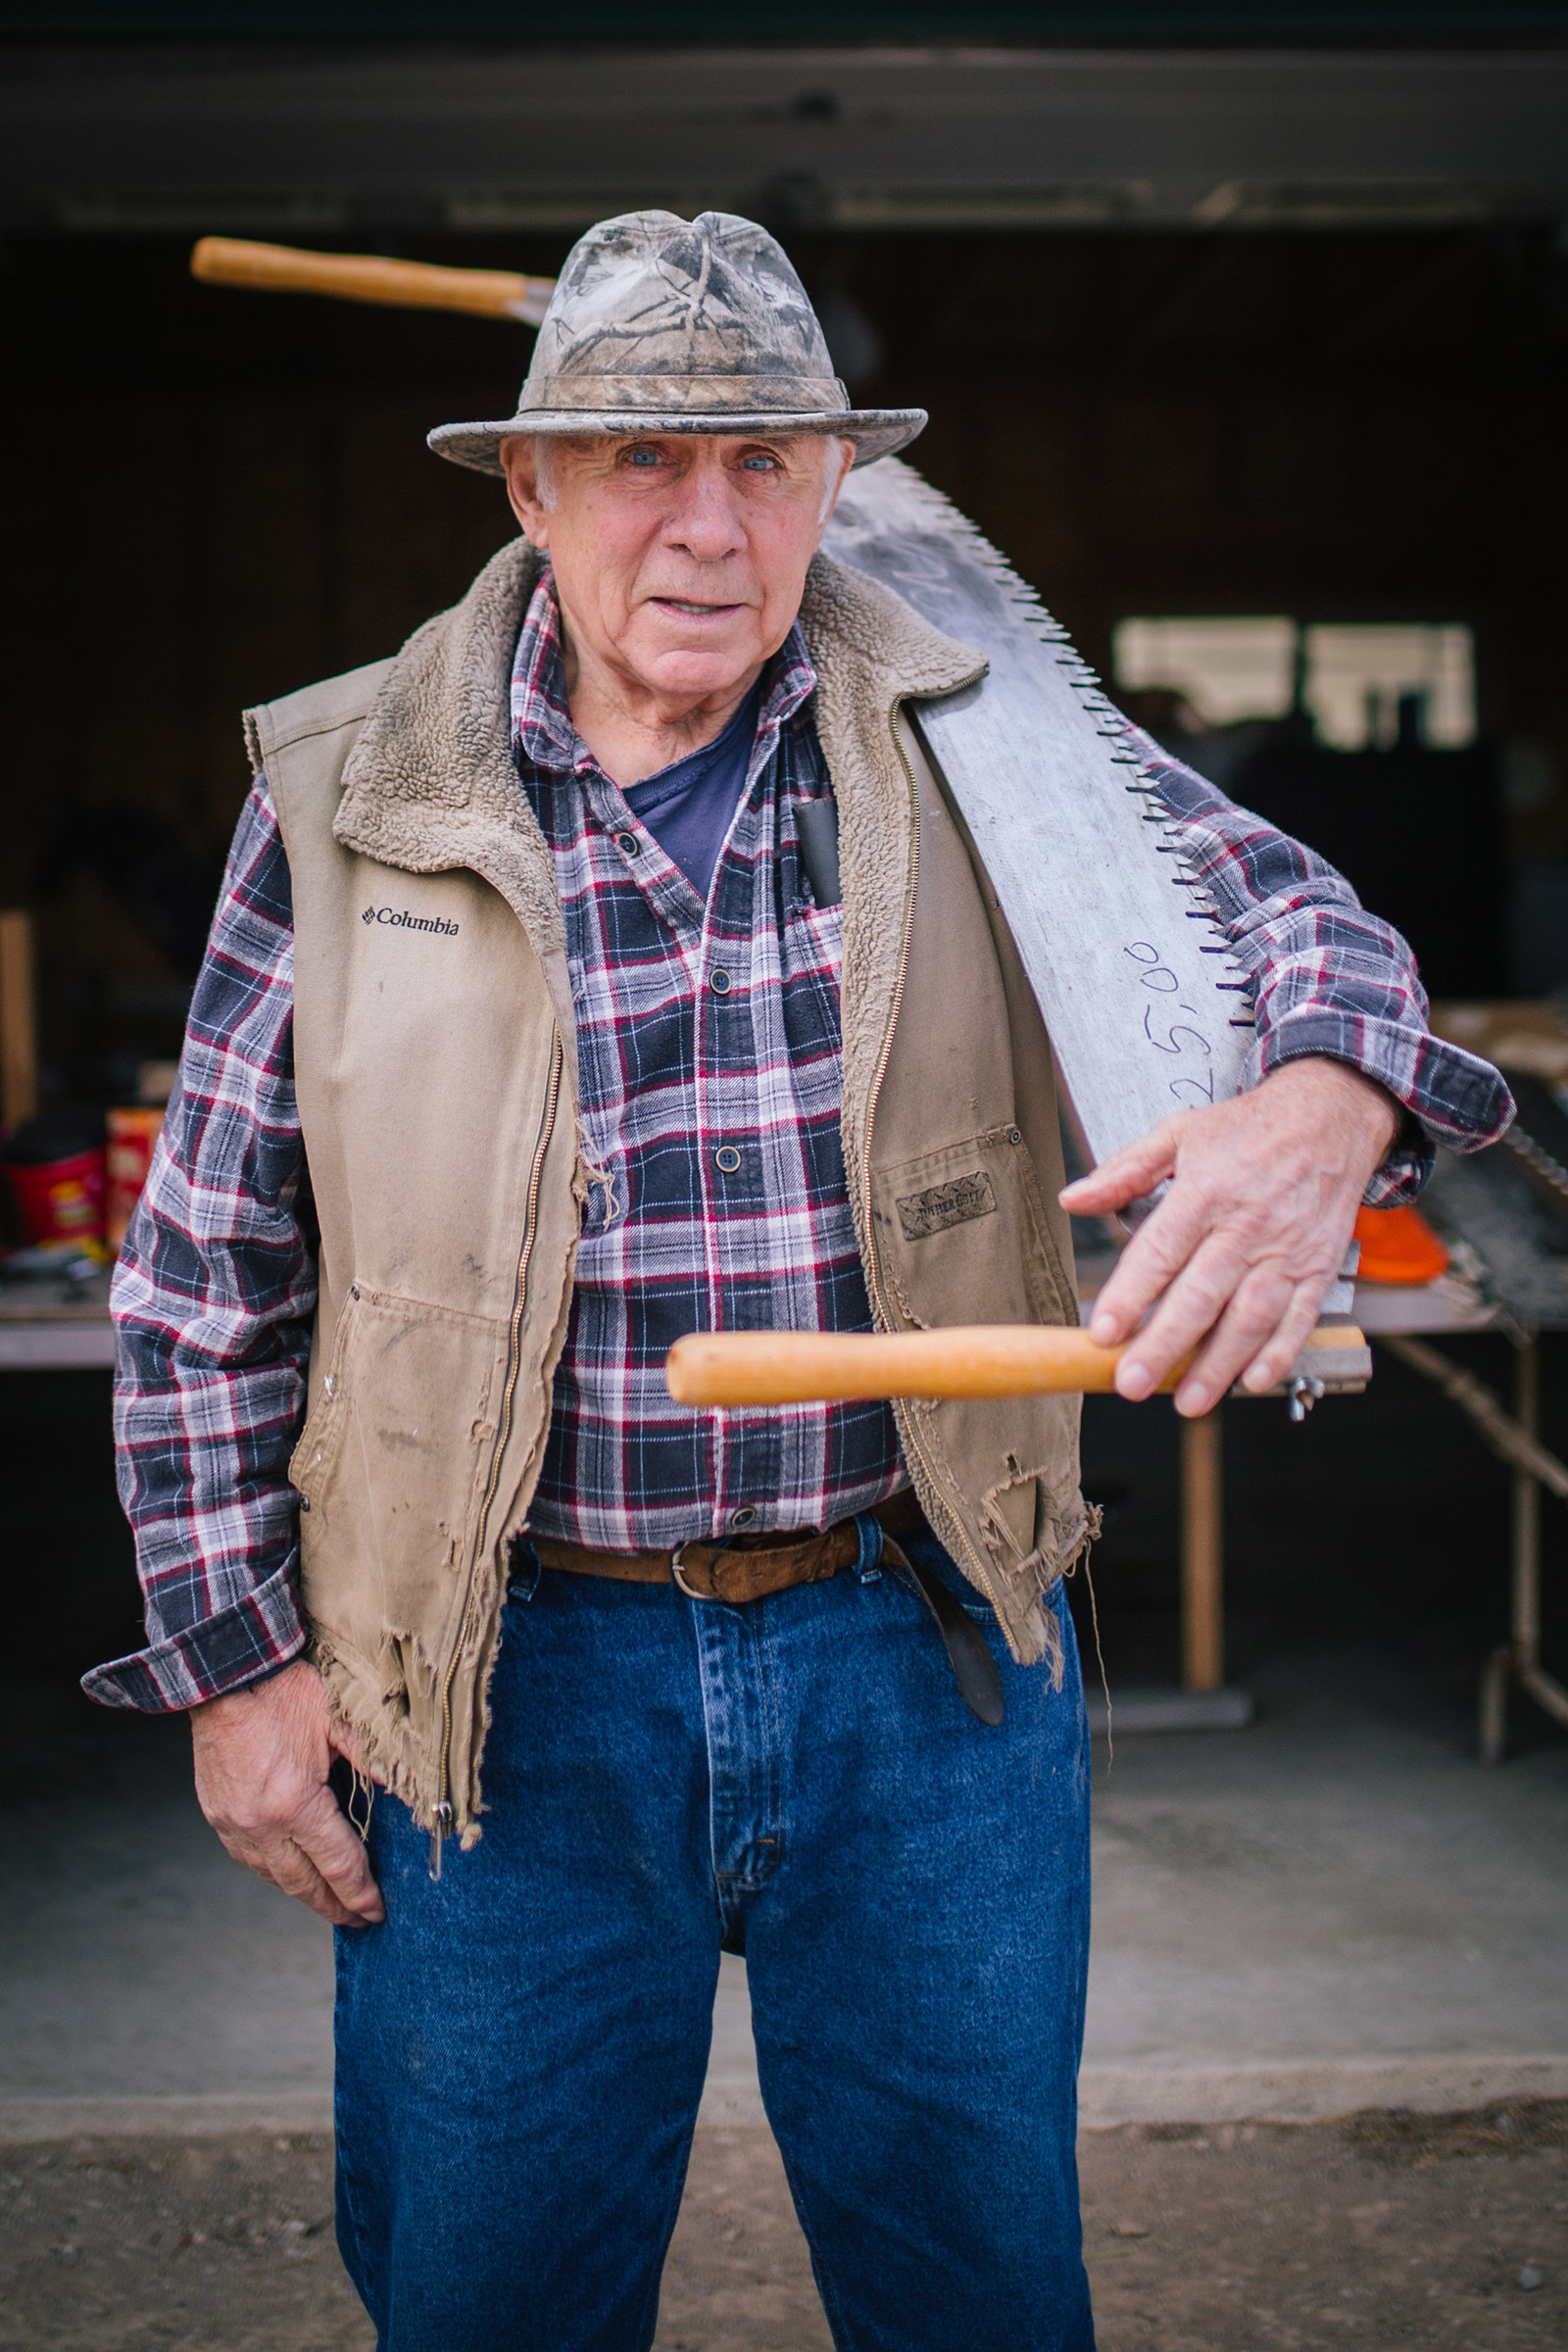 In this Montana photography session, Phil Crist poses in front of his workshop with one of his saws.